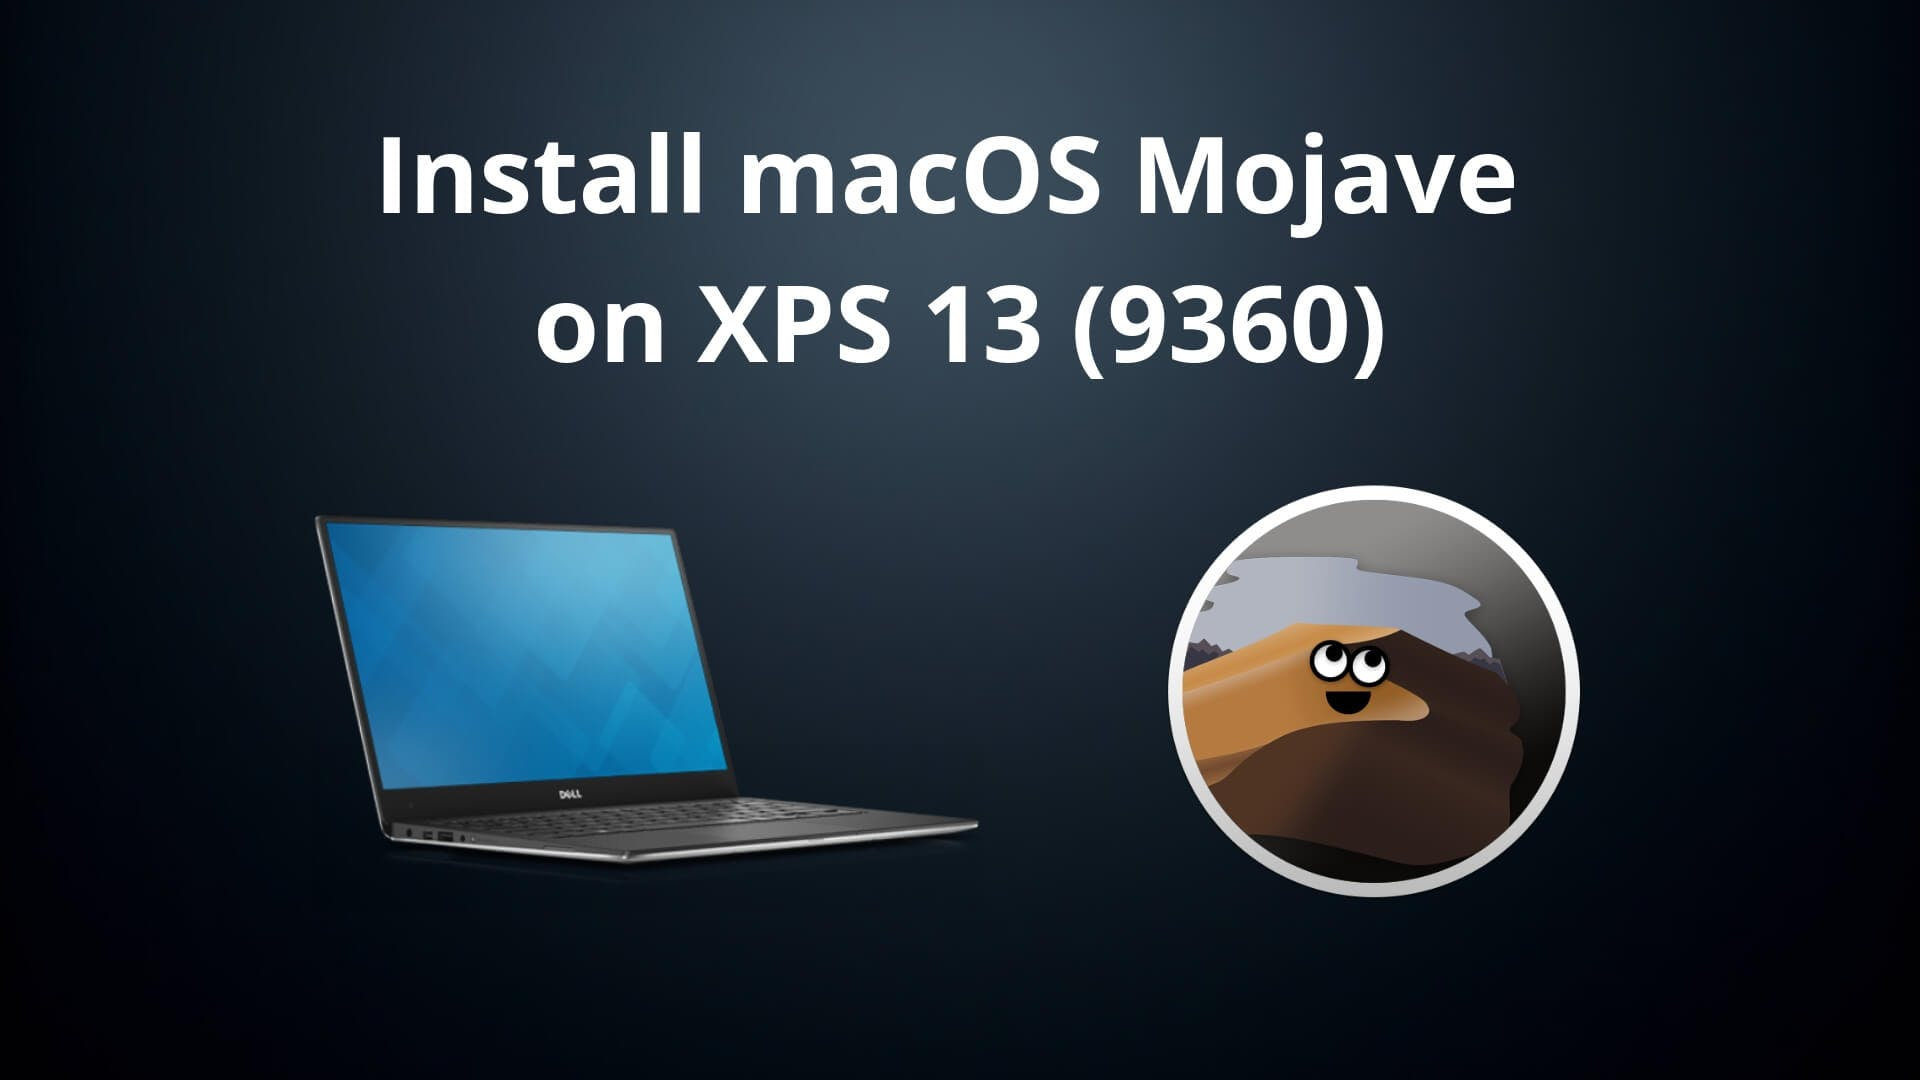 the xps 13 (9360) running macos mojave